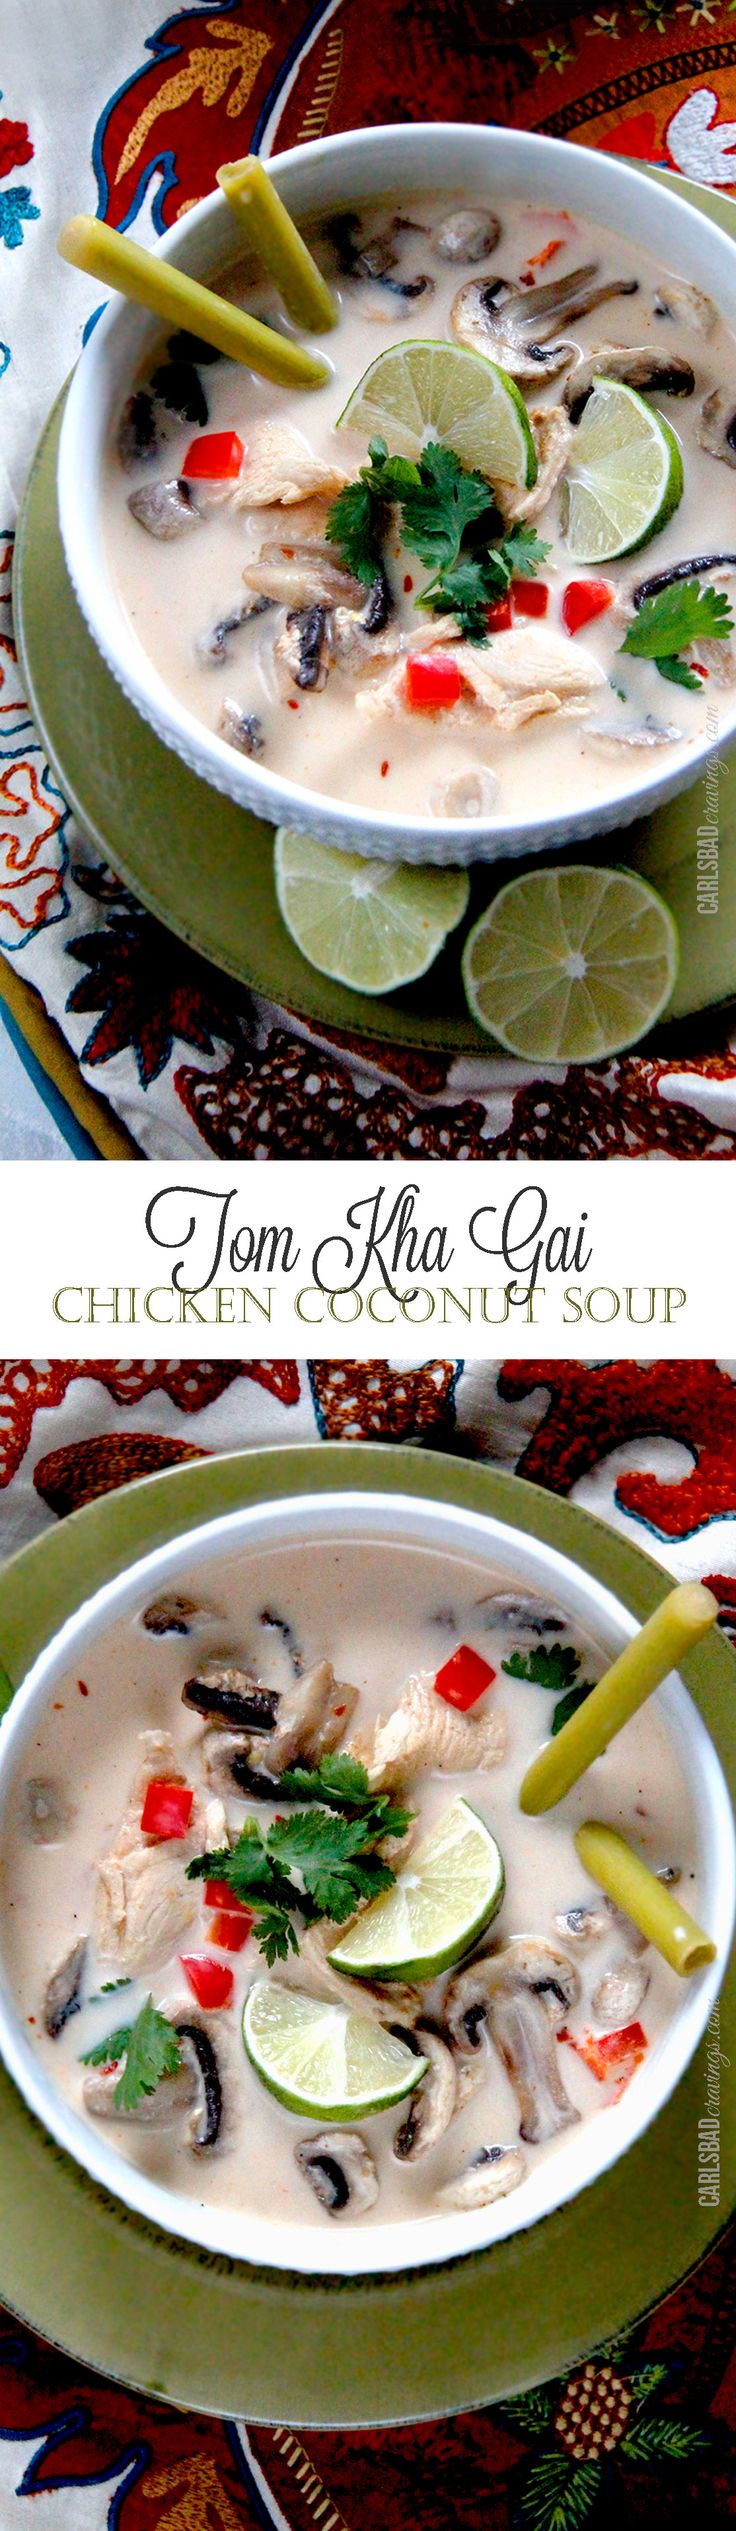 Tom Kha Gai (Chicken Coconut Soup) -- Warm coconut broth infused with lemongrass, red curry, ginger, and basil, with thinly sliced tender chicken, mushrooms and red bell peppers. Refreshing with layers of tantalizing spices. Every bit as delicious as your favorite Thai restaurant and on your table in less than 30 minutes! http://www.carlsbadcravings.com/tom-kha-gai-thai-chicken-coconut-soup/